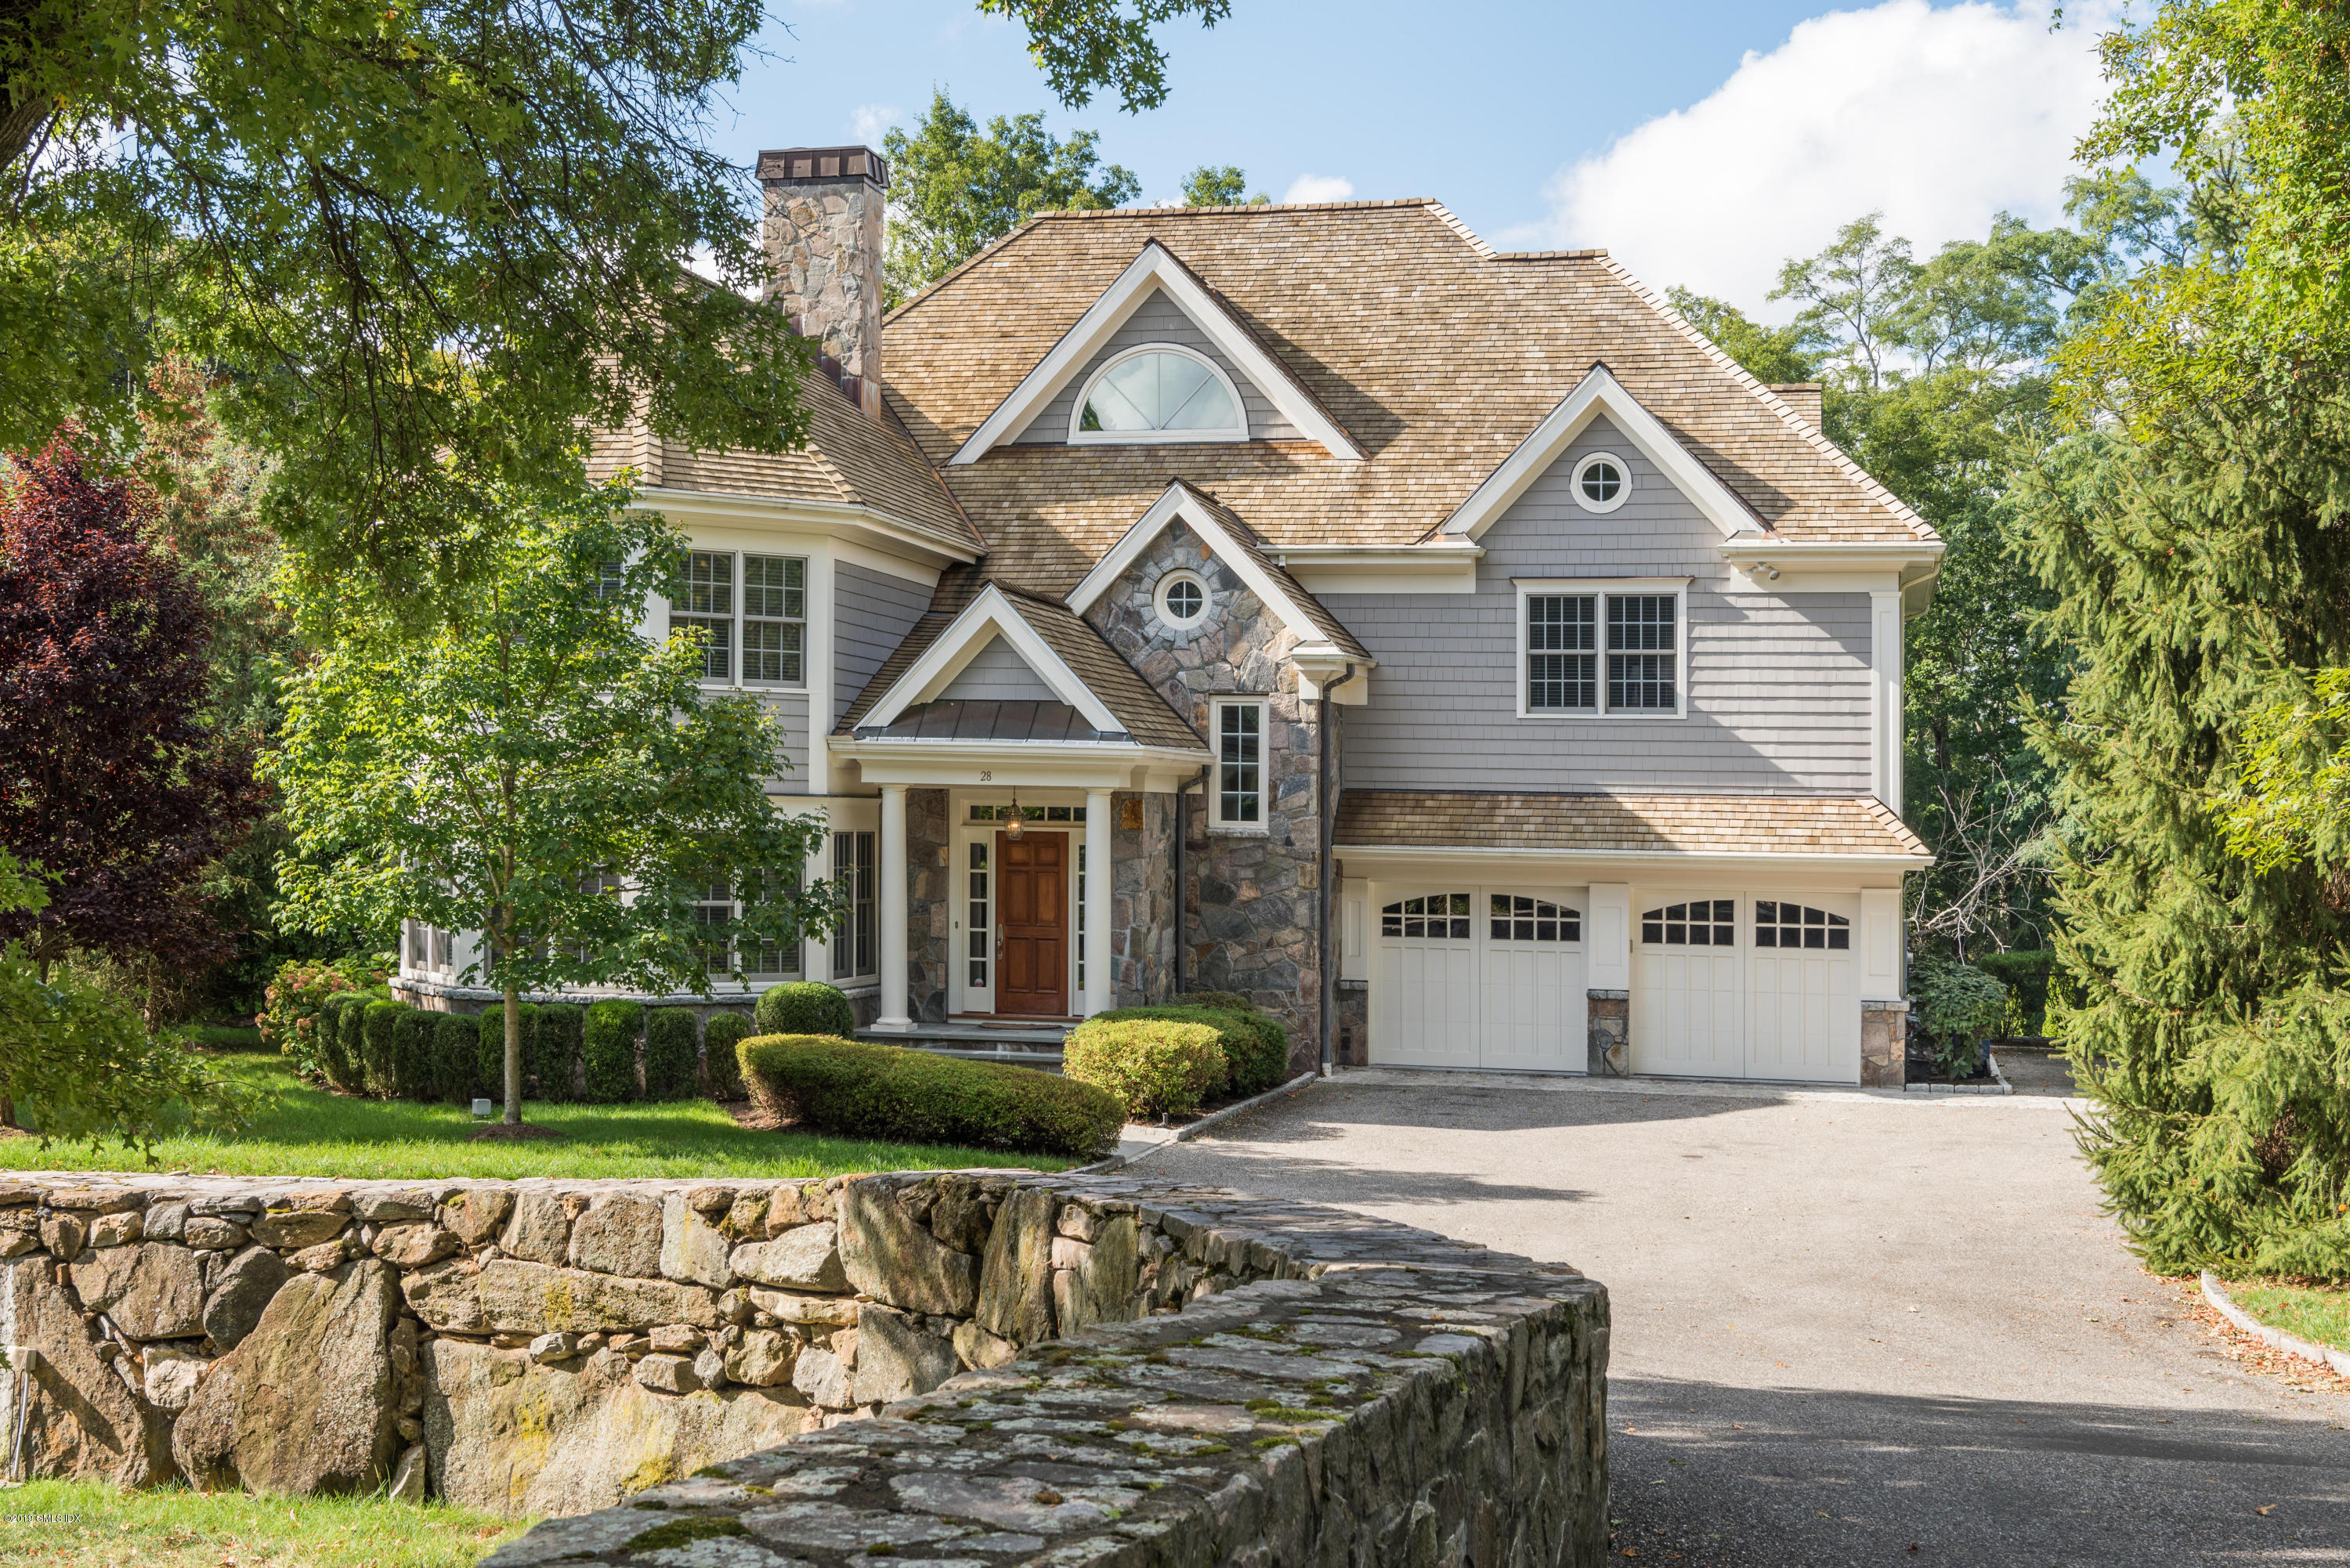 28 Oak Street,Greenwich,Connecticut 06831,5 Bedrooms Bedrooms,6 BathroomsBathrooms,Single family,Oak,105639